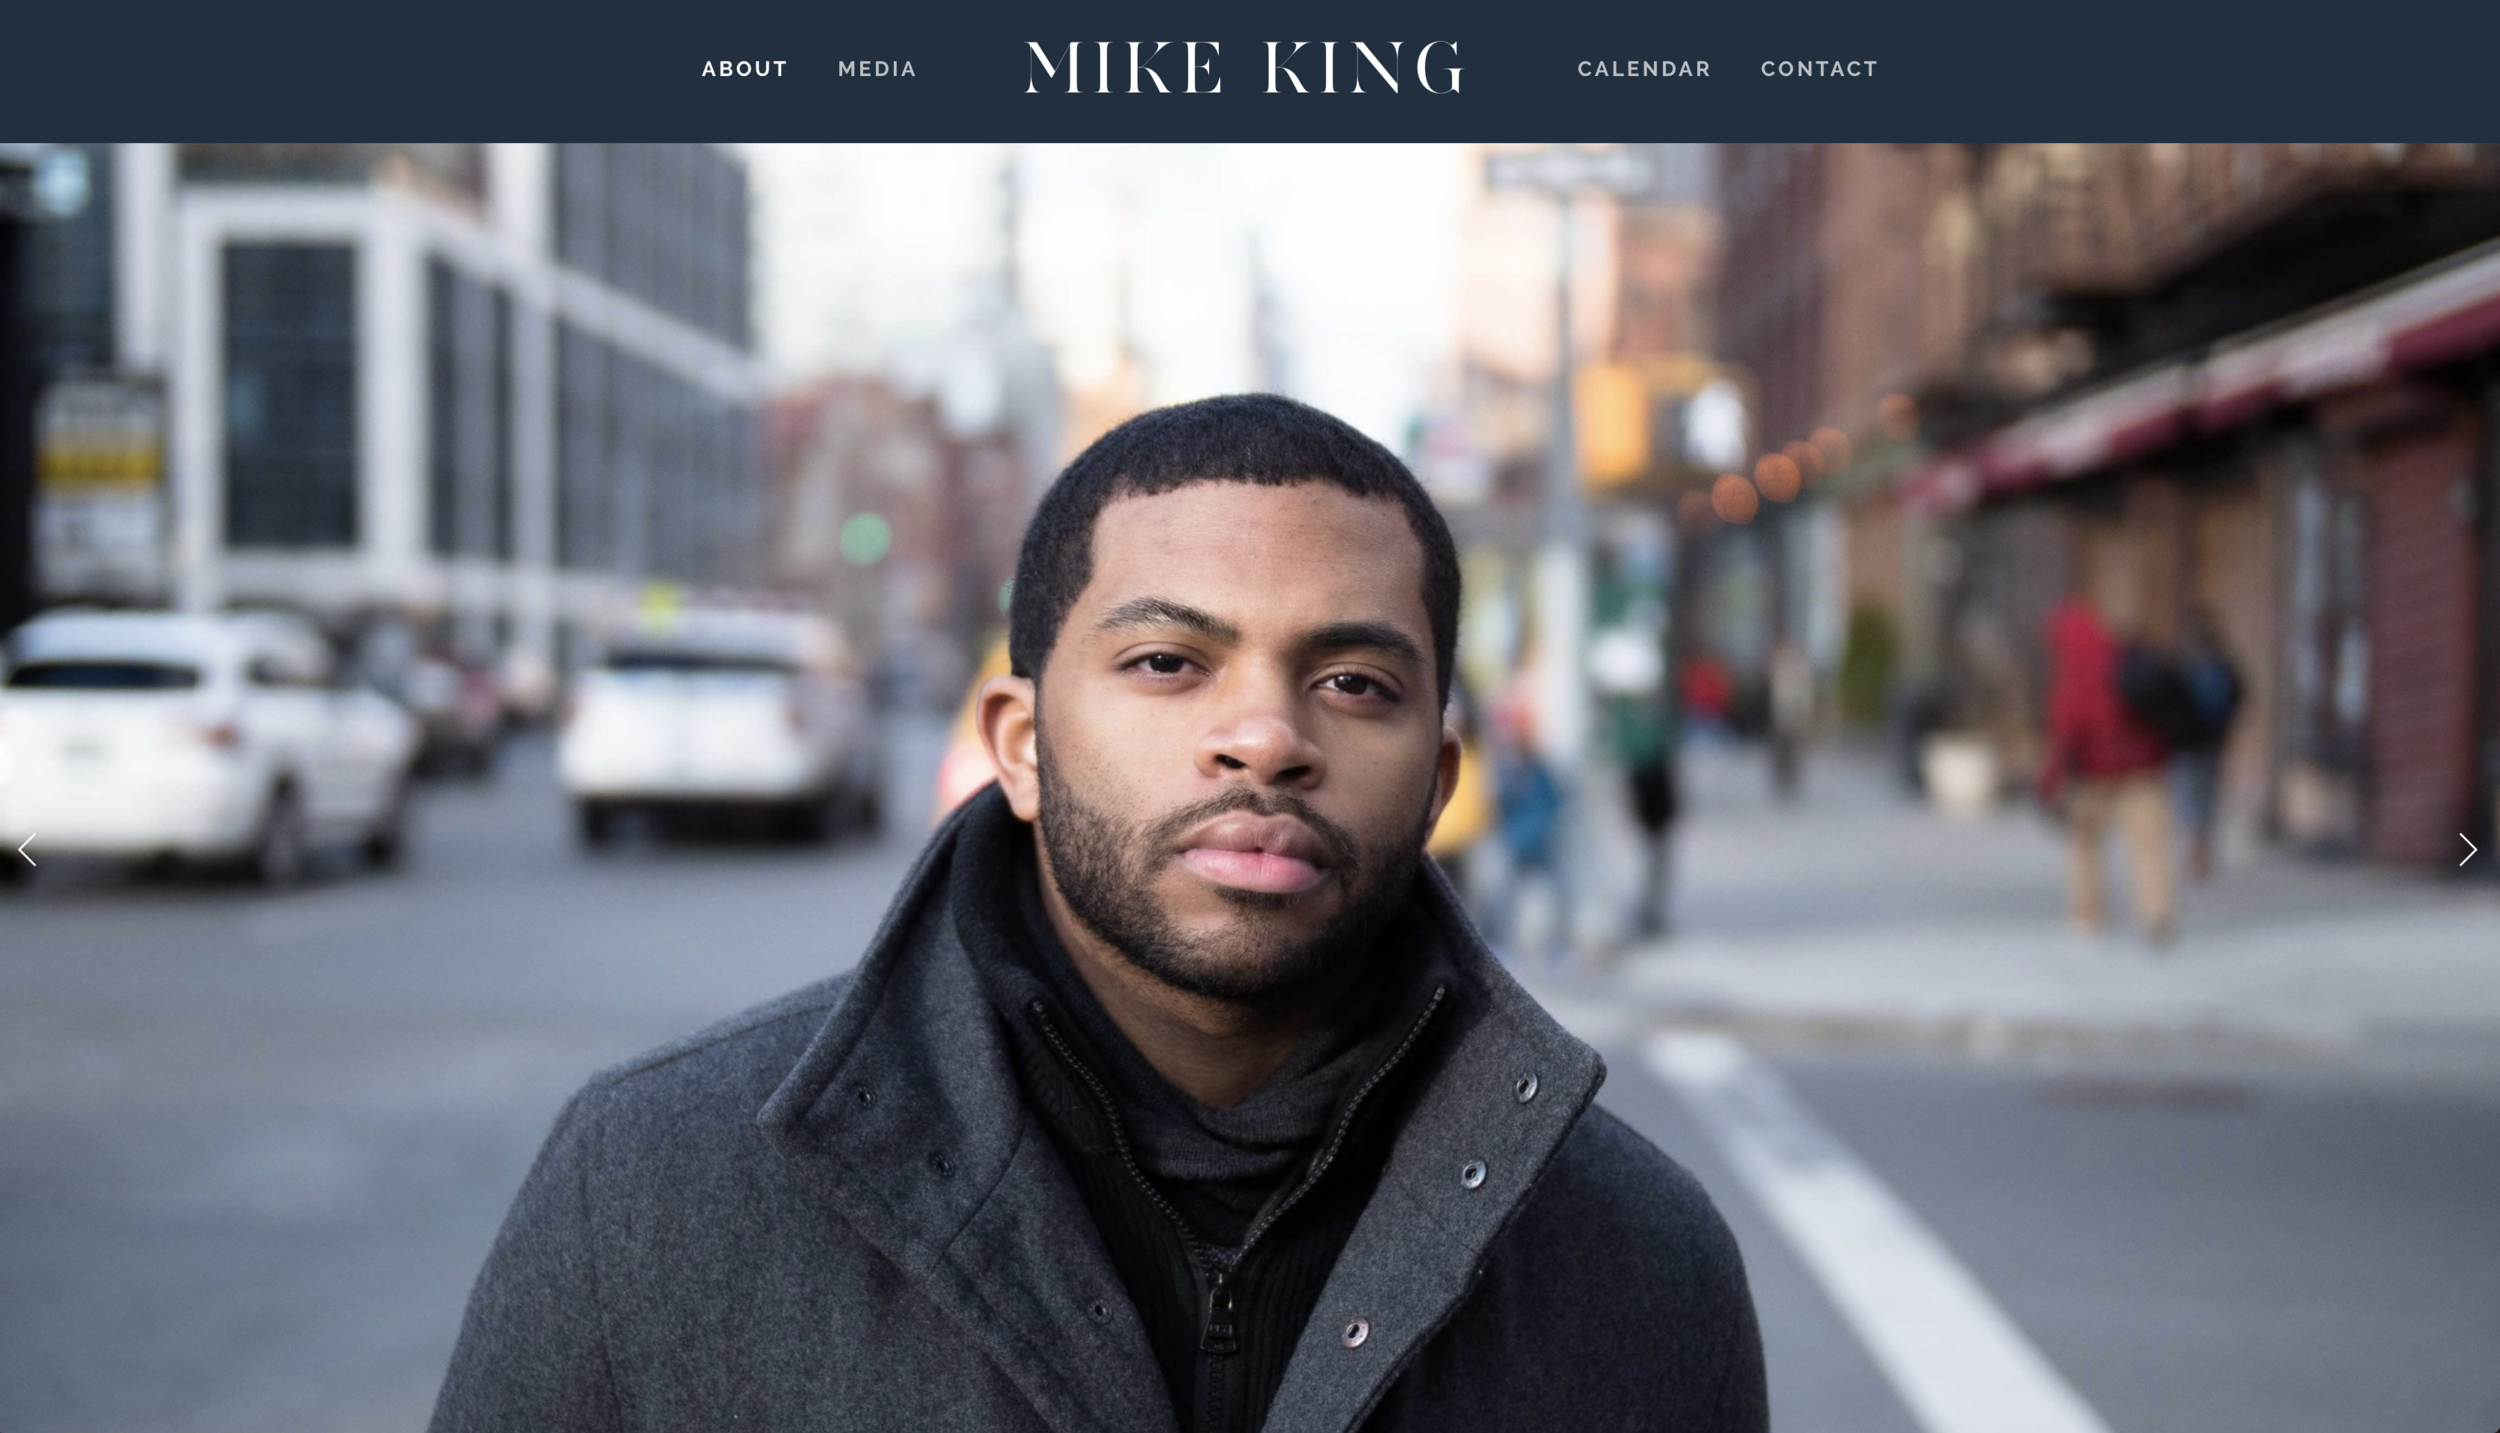 Mike King Piano Website